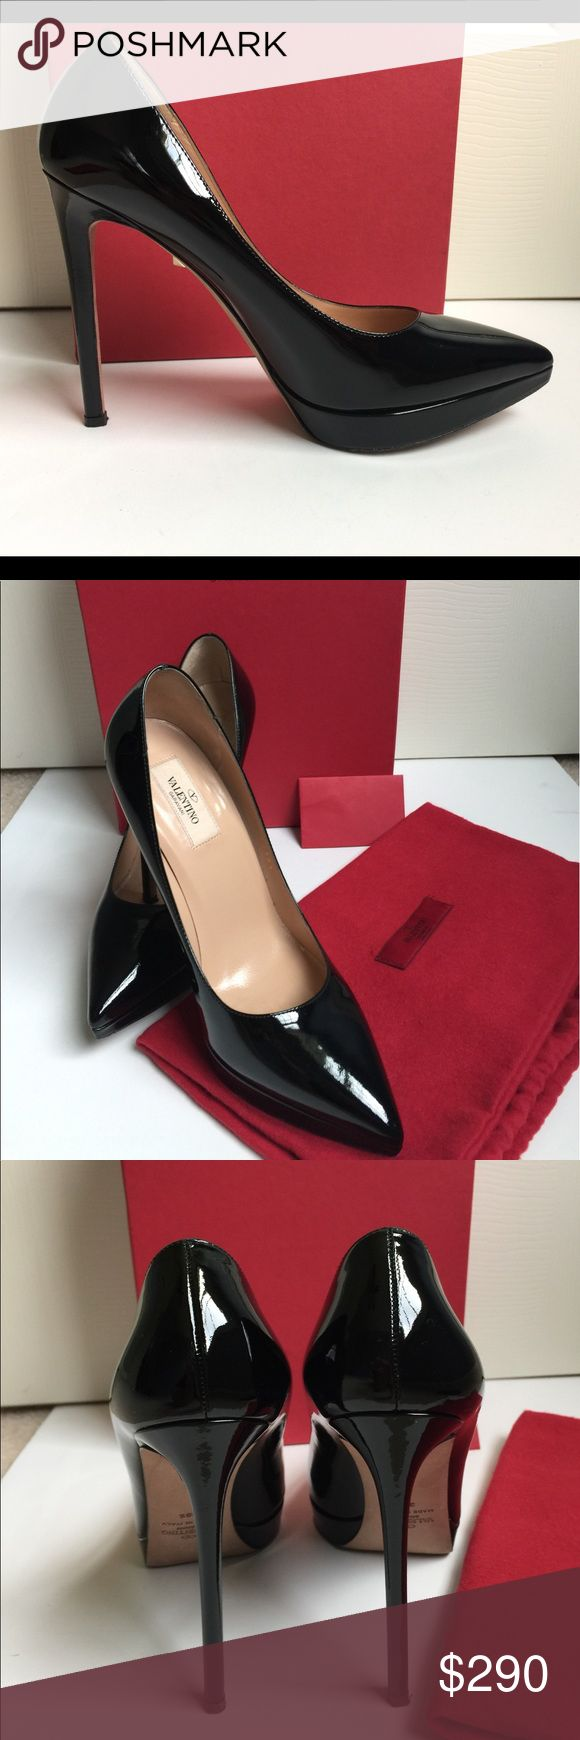 Valentino Black Patent Leather Platform Heels Valentino Garavani 100% Authentic Ultra High Patent Leather Platform Heels - size 38.5 - Color is Nero (Black) - Worn one time for two hours - excellent condition except for soles as shown in picture - Really, they look fabulous - there are no scuffs, marks or anything else on the patent leather in the areas that are visible - Box, dust bag all included. Valentino Garavani Shoes Platforms